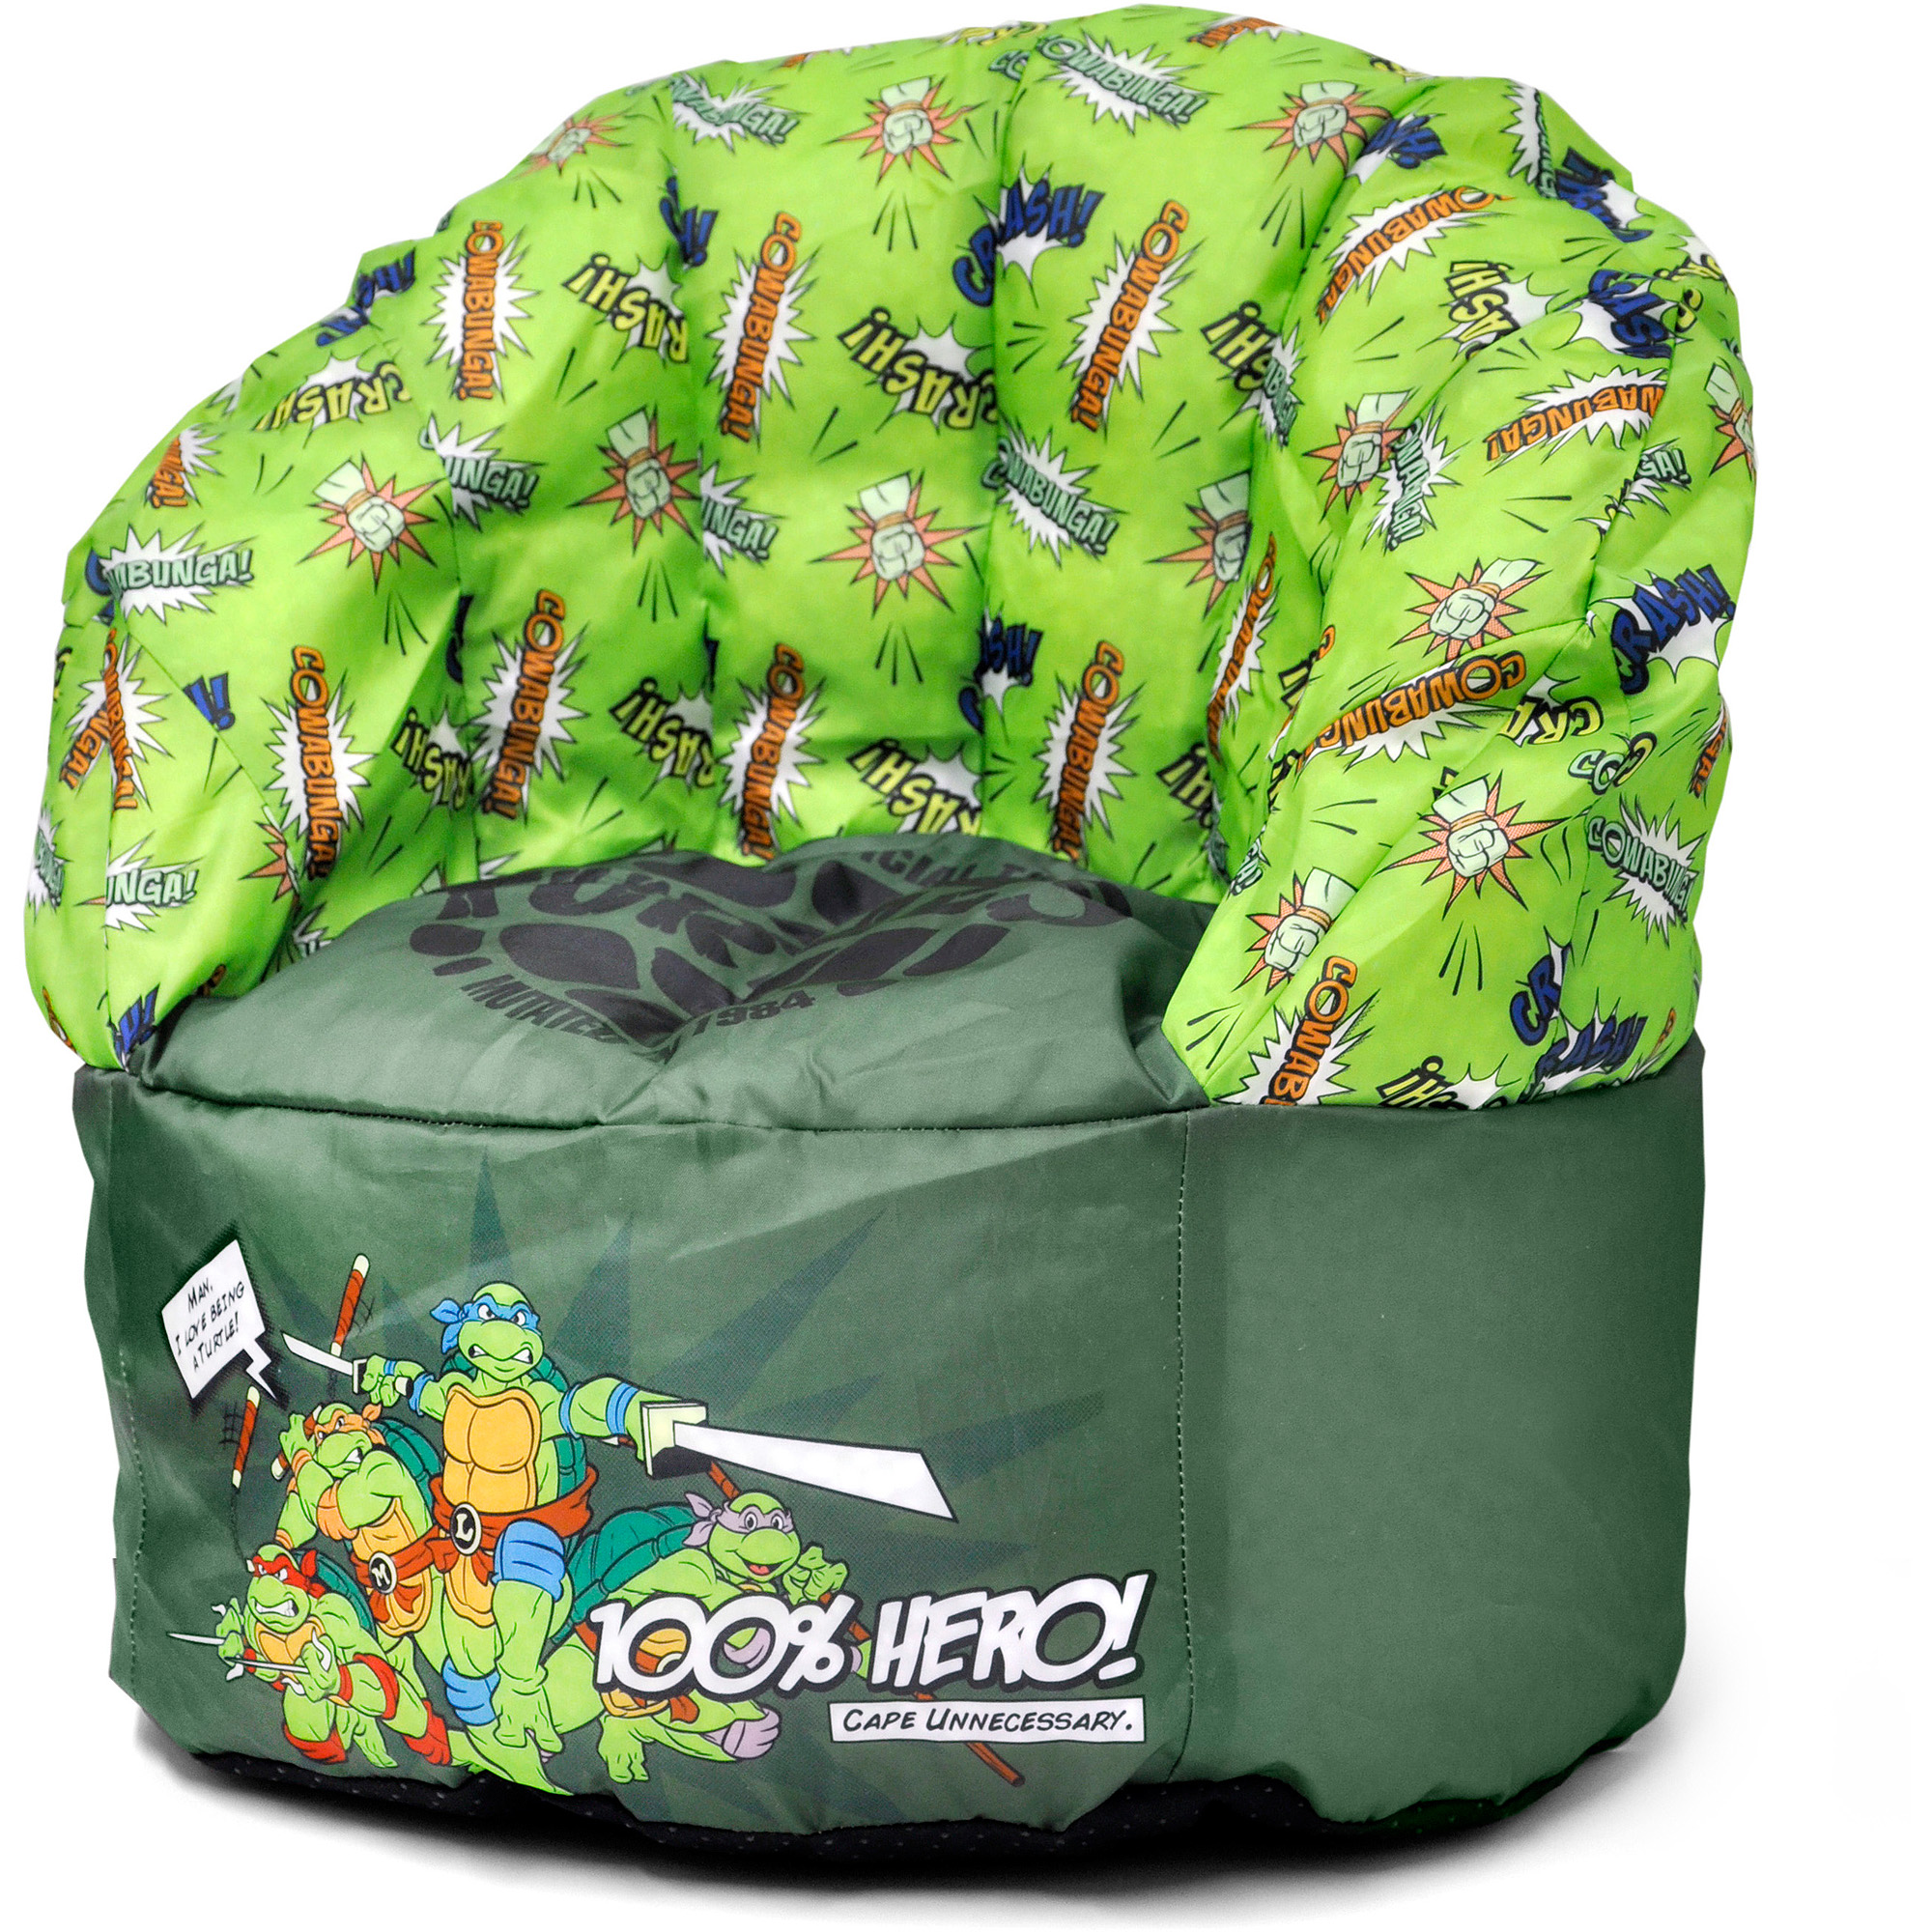 Nickelodeon Teenage Mutant Ninja Turtles Bean Bag Chair Walmart